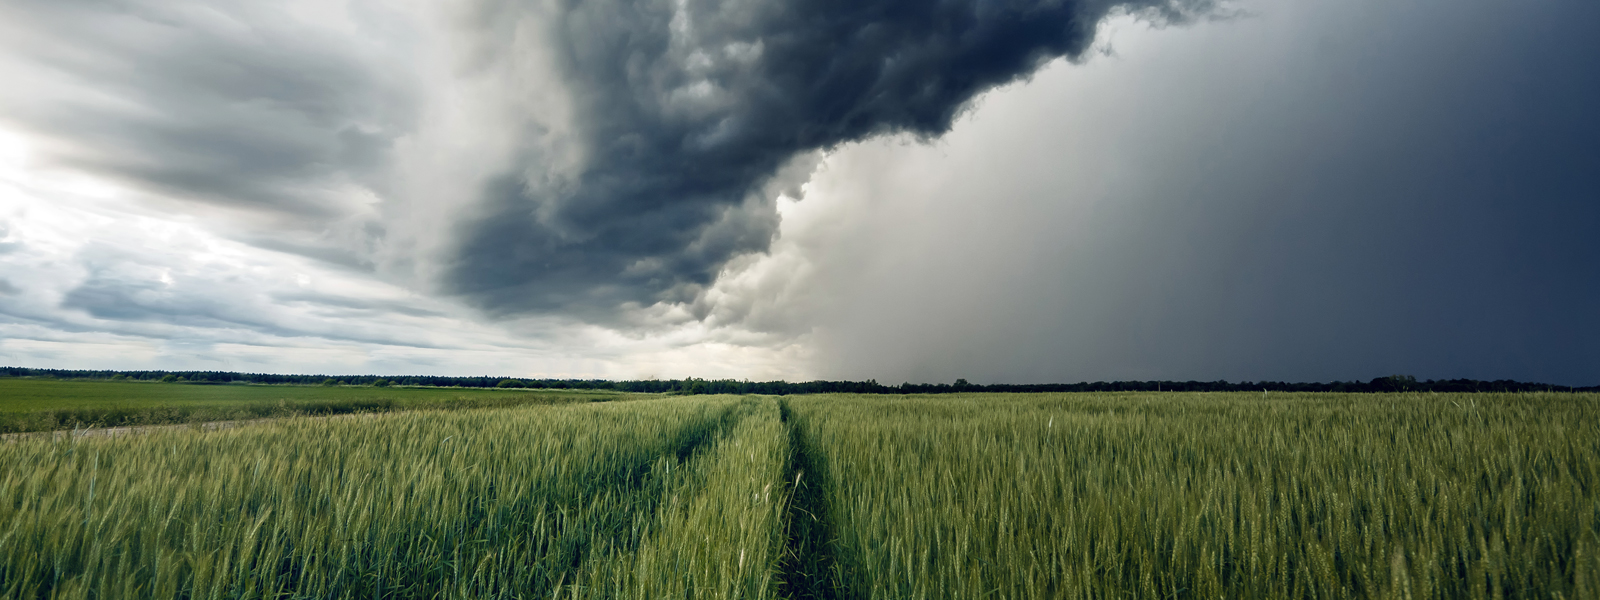 Storm clouds over wheat field